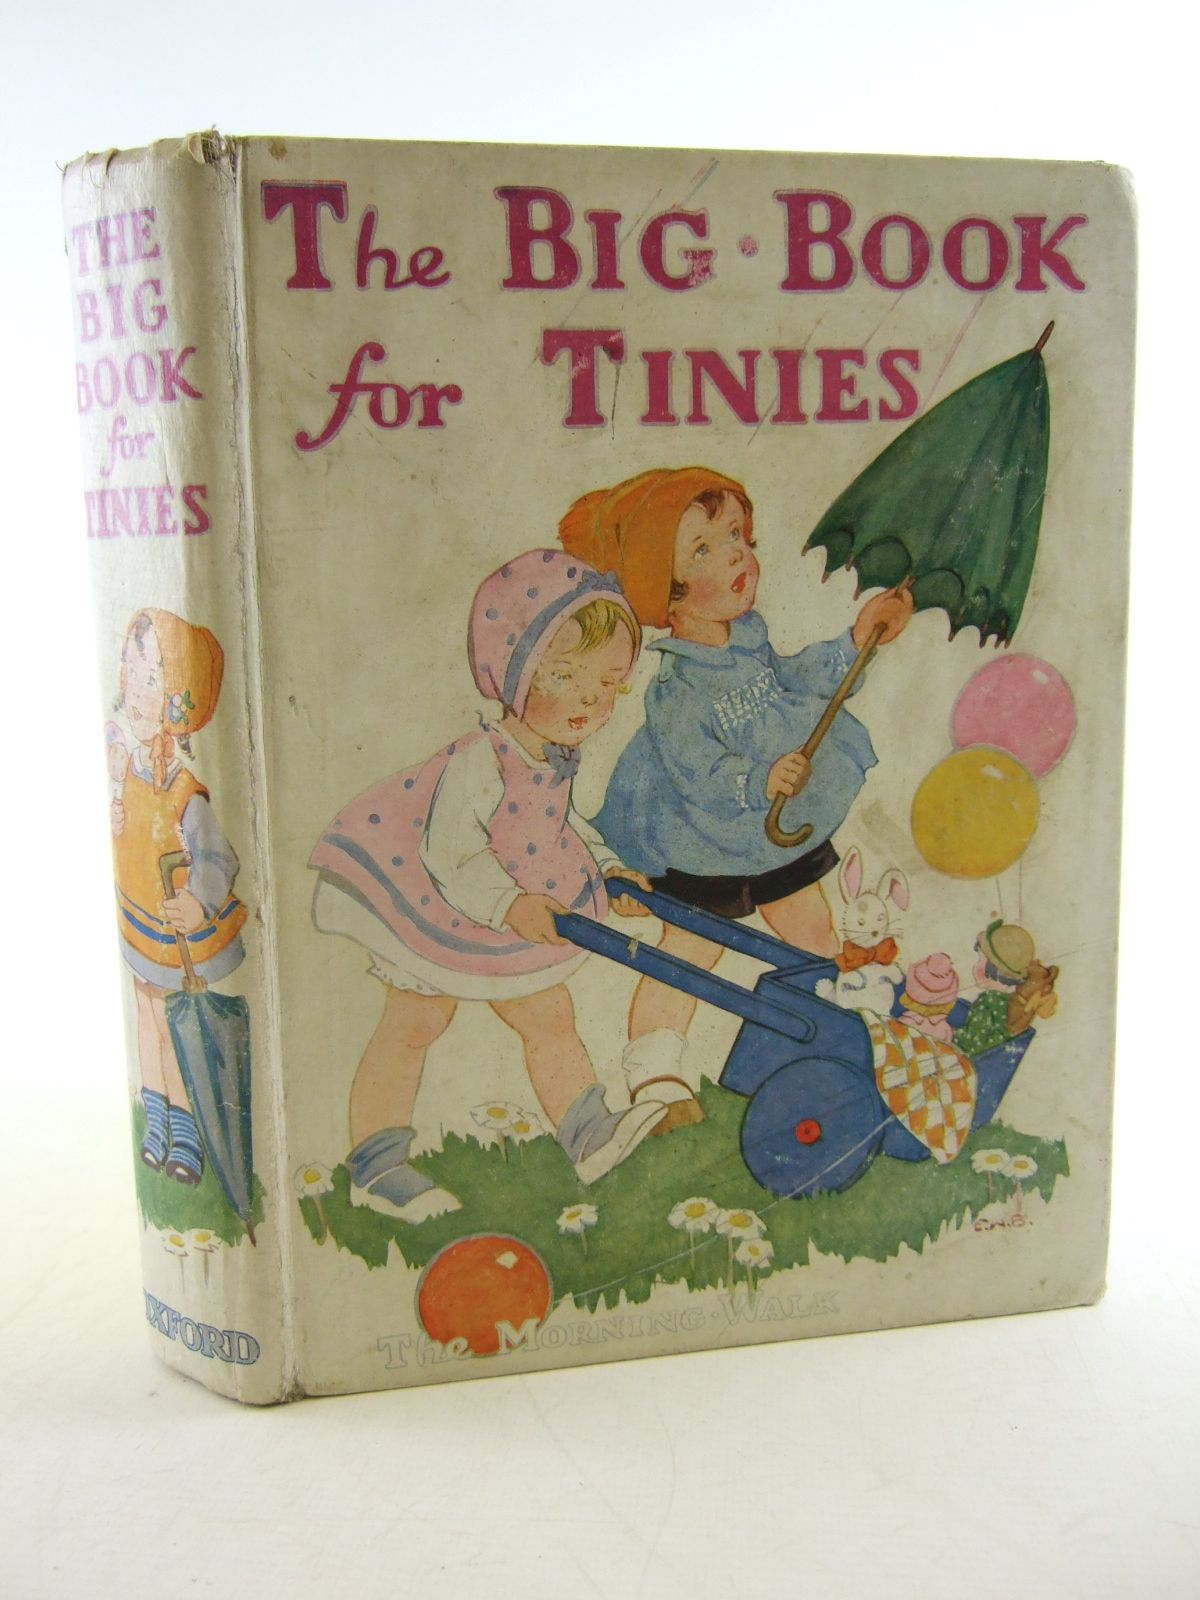 Photo of THE BIG BOOK FOR TINIES written by Strang, Mrs. Herbert published by Humphrey Milford, Oxford University Press (STOCK CODE: 1806834)  for sale by Stella & Rose's Books